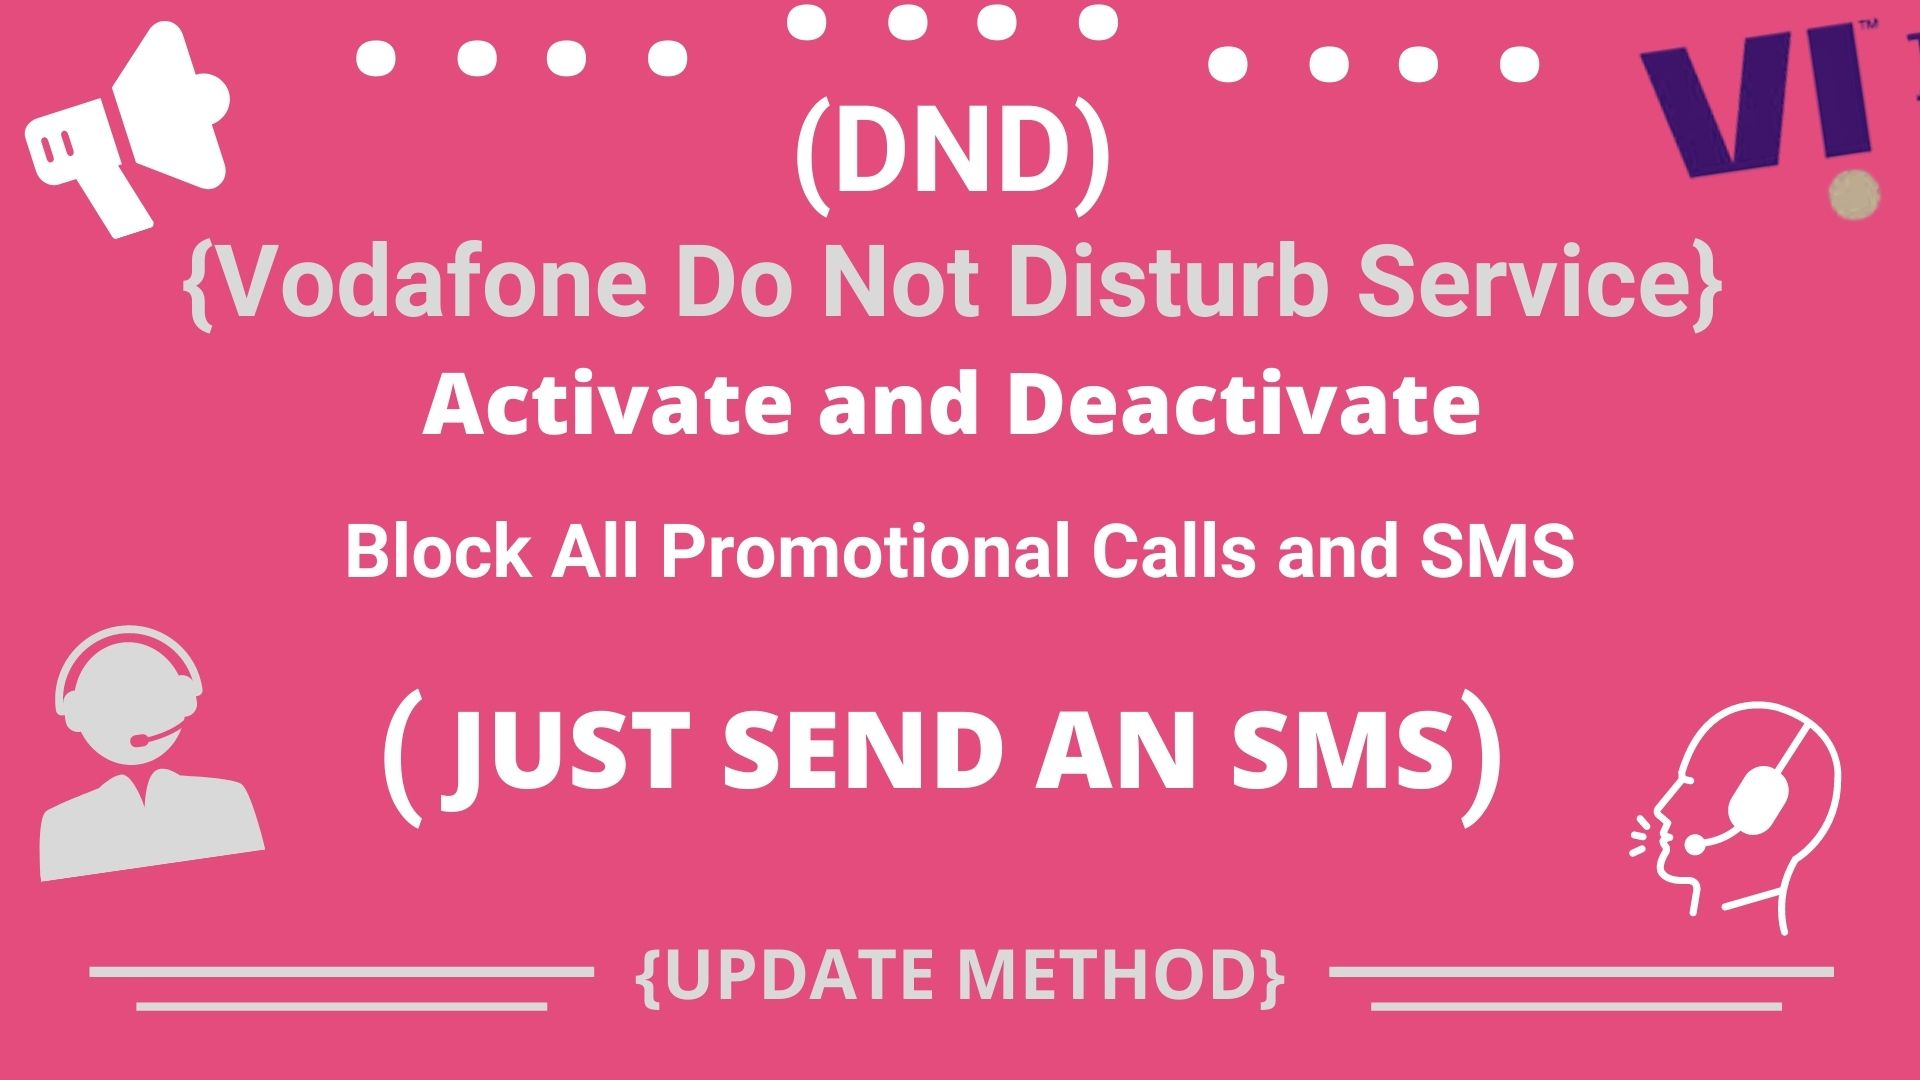 Activate DND Service in Vodafone